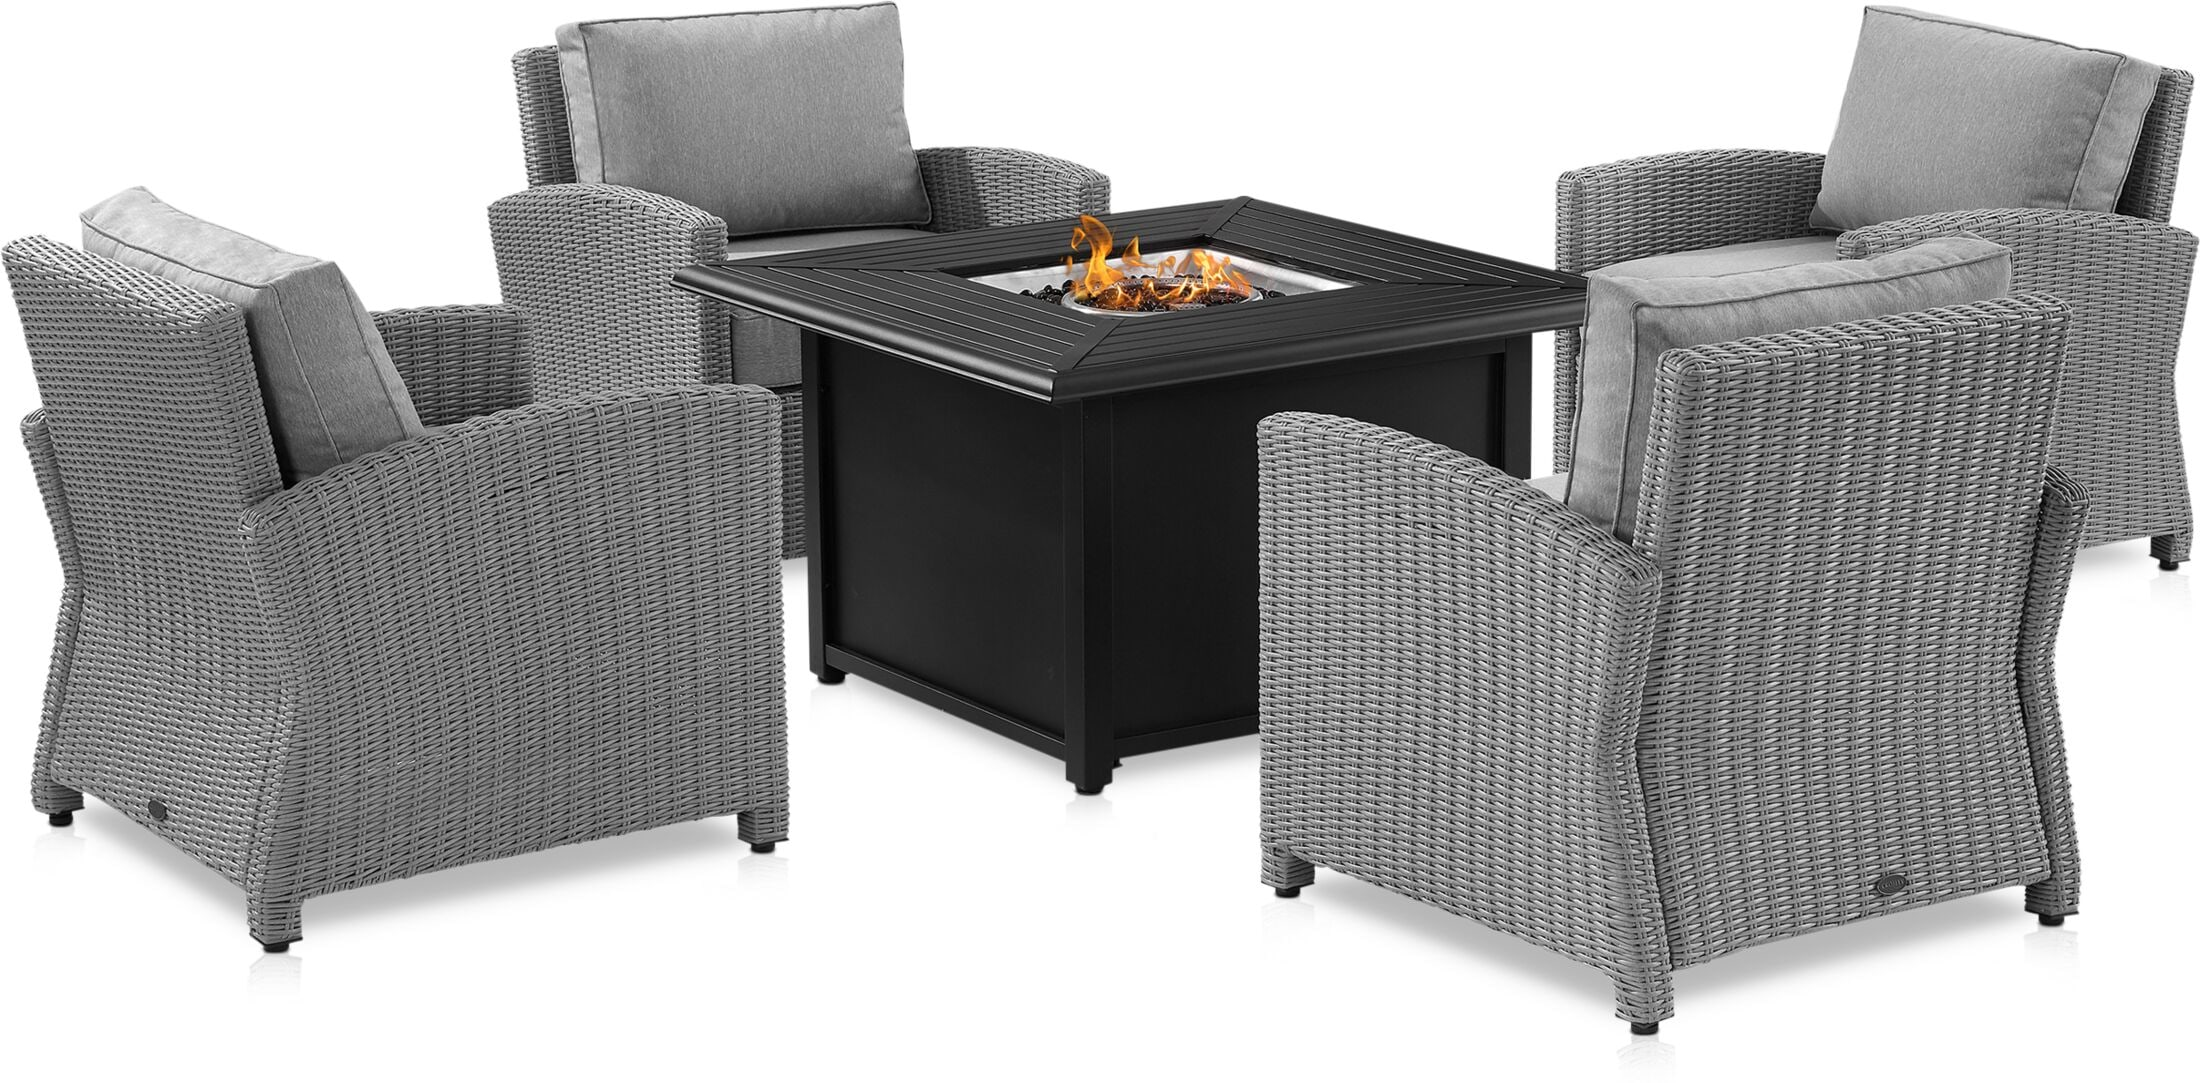 Outdoor Furniture - Destin Set of 4 Outdoor Chairs and Fire Tybee Table